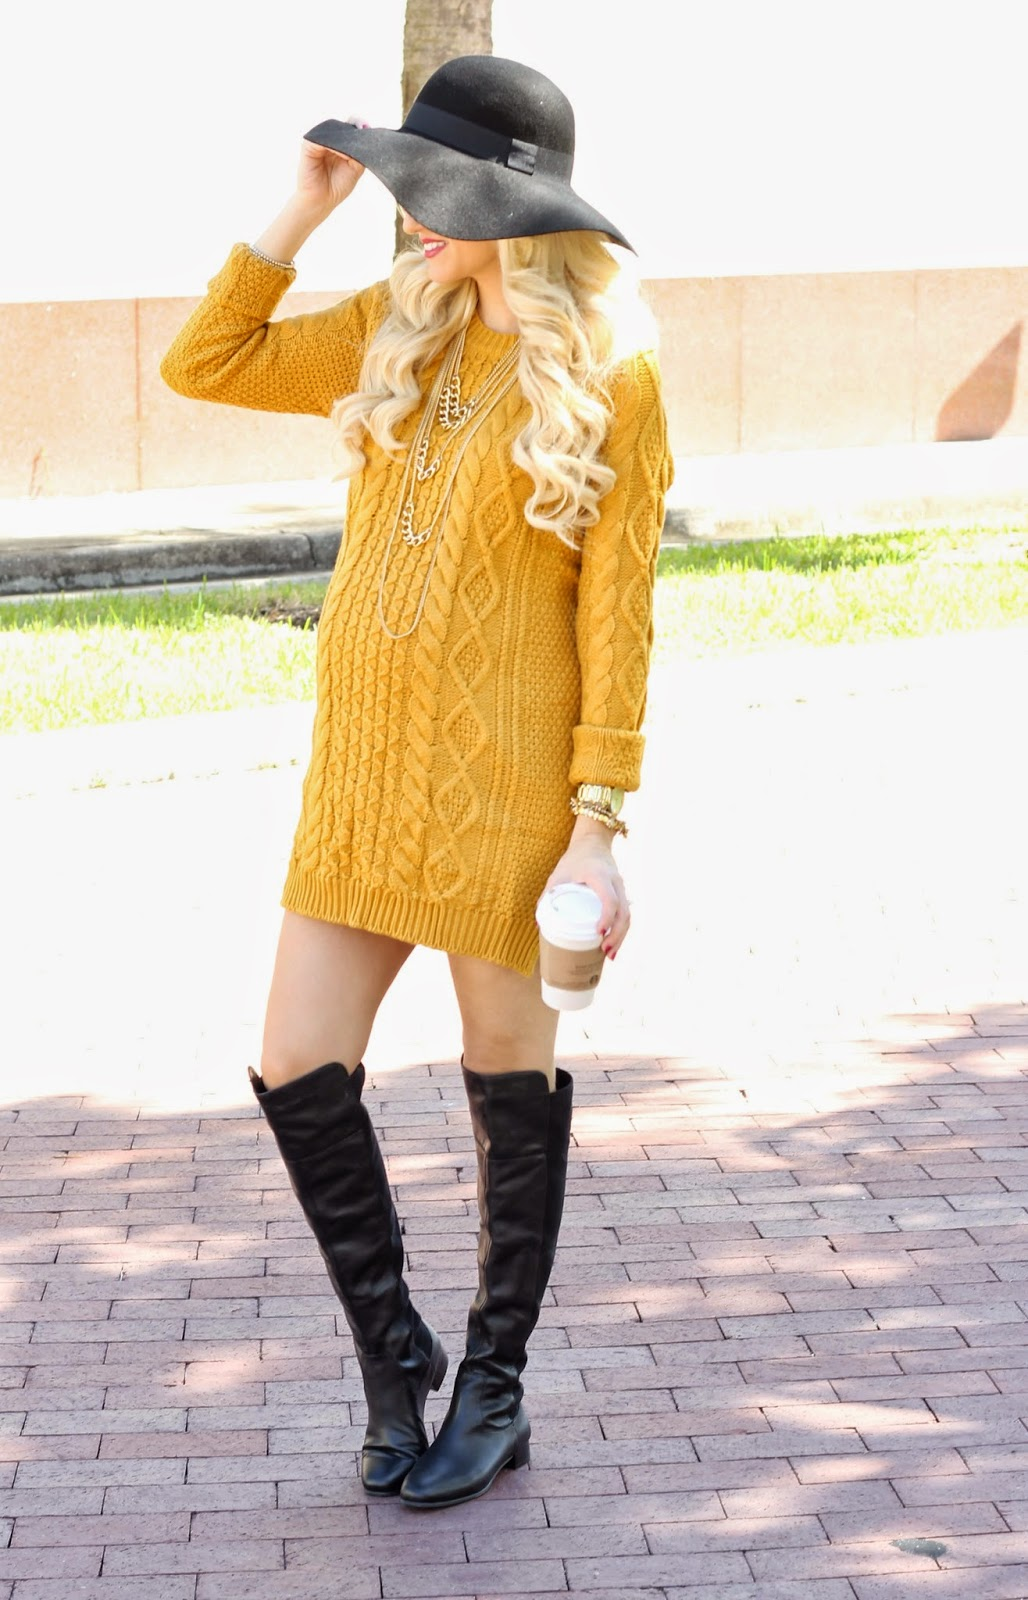 Sweater dress paired with knee high boots